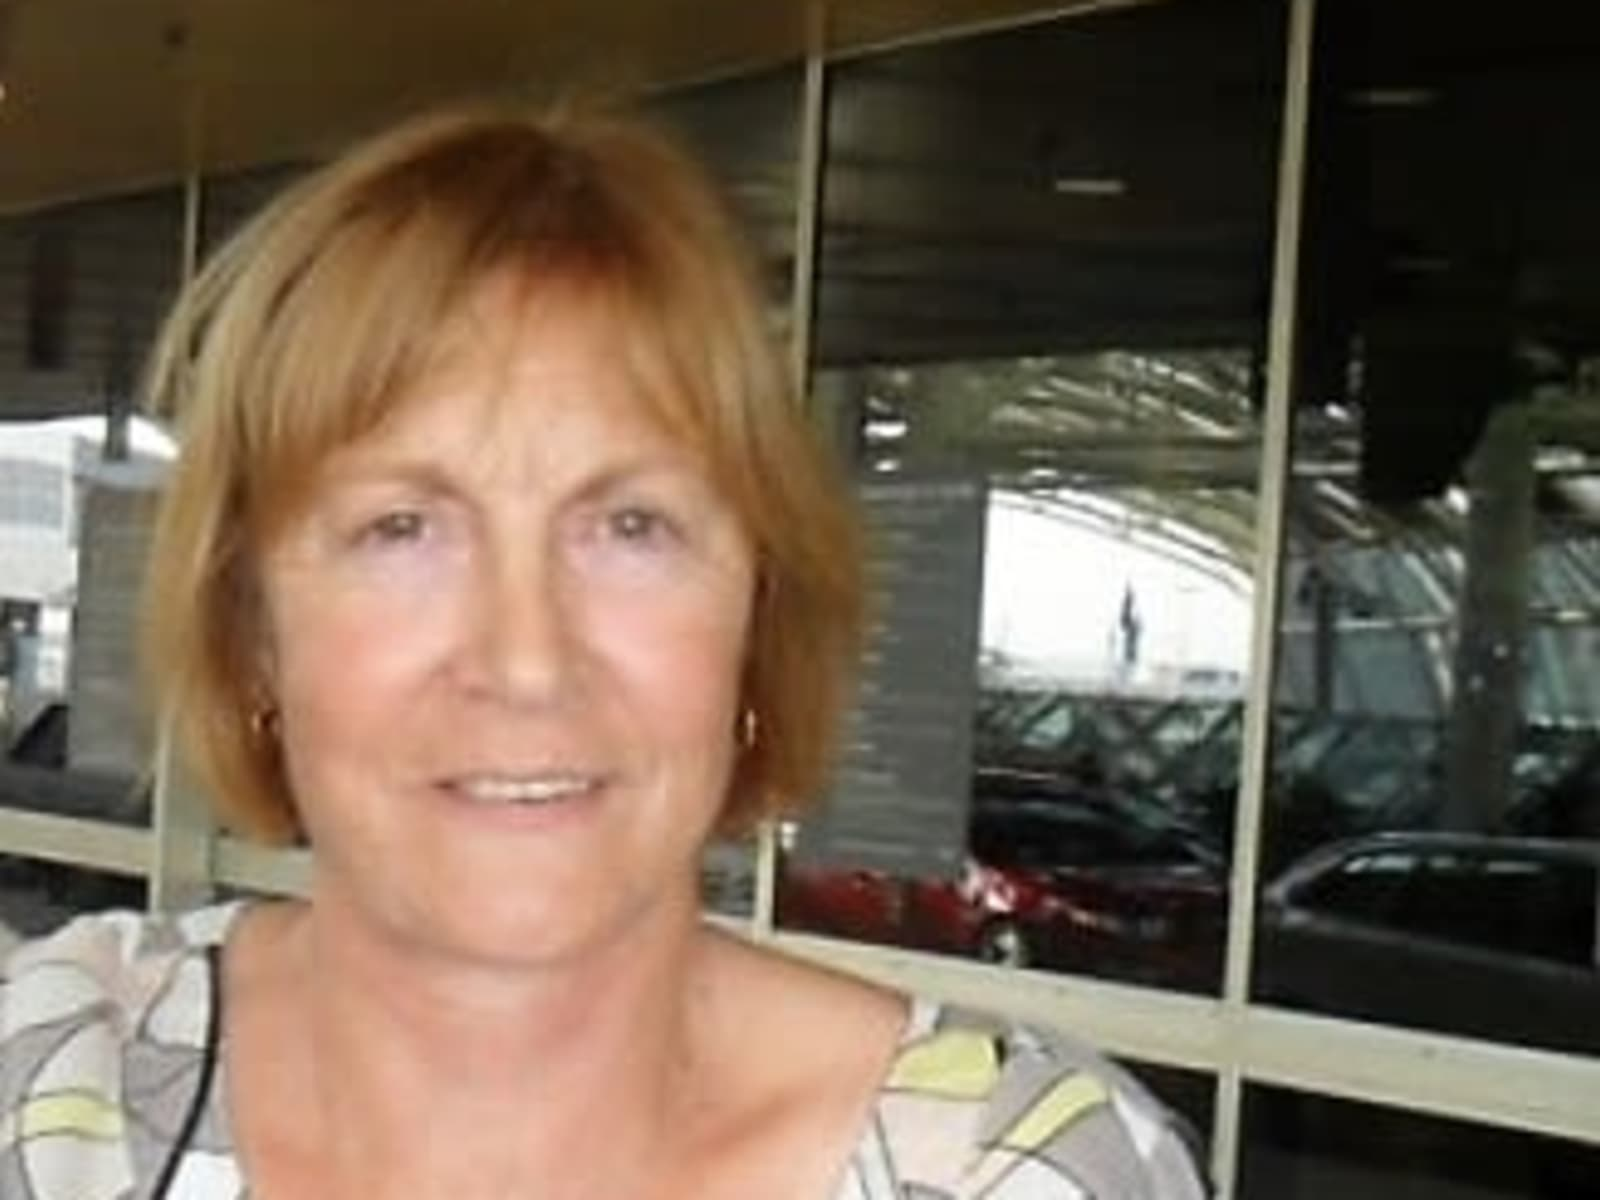 Lynda from Coffs Harbour, New South Wales, Australia